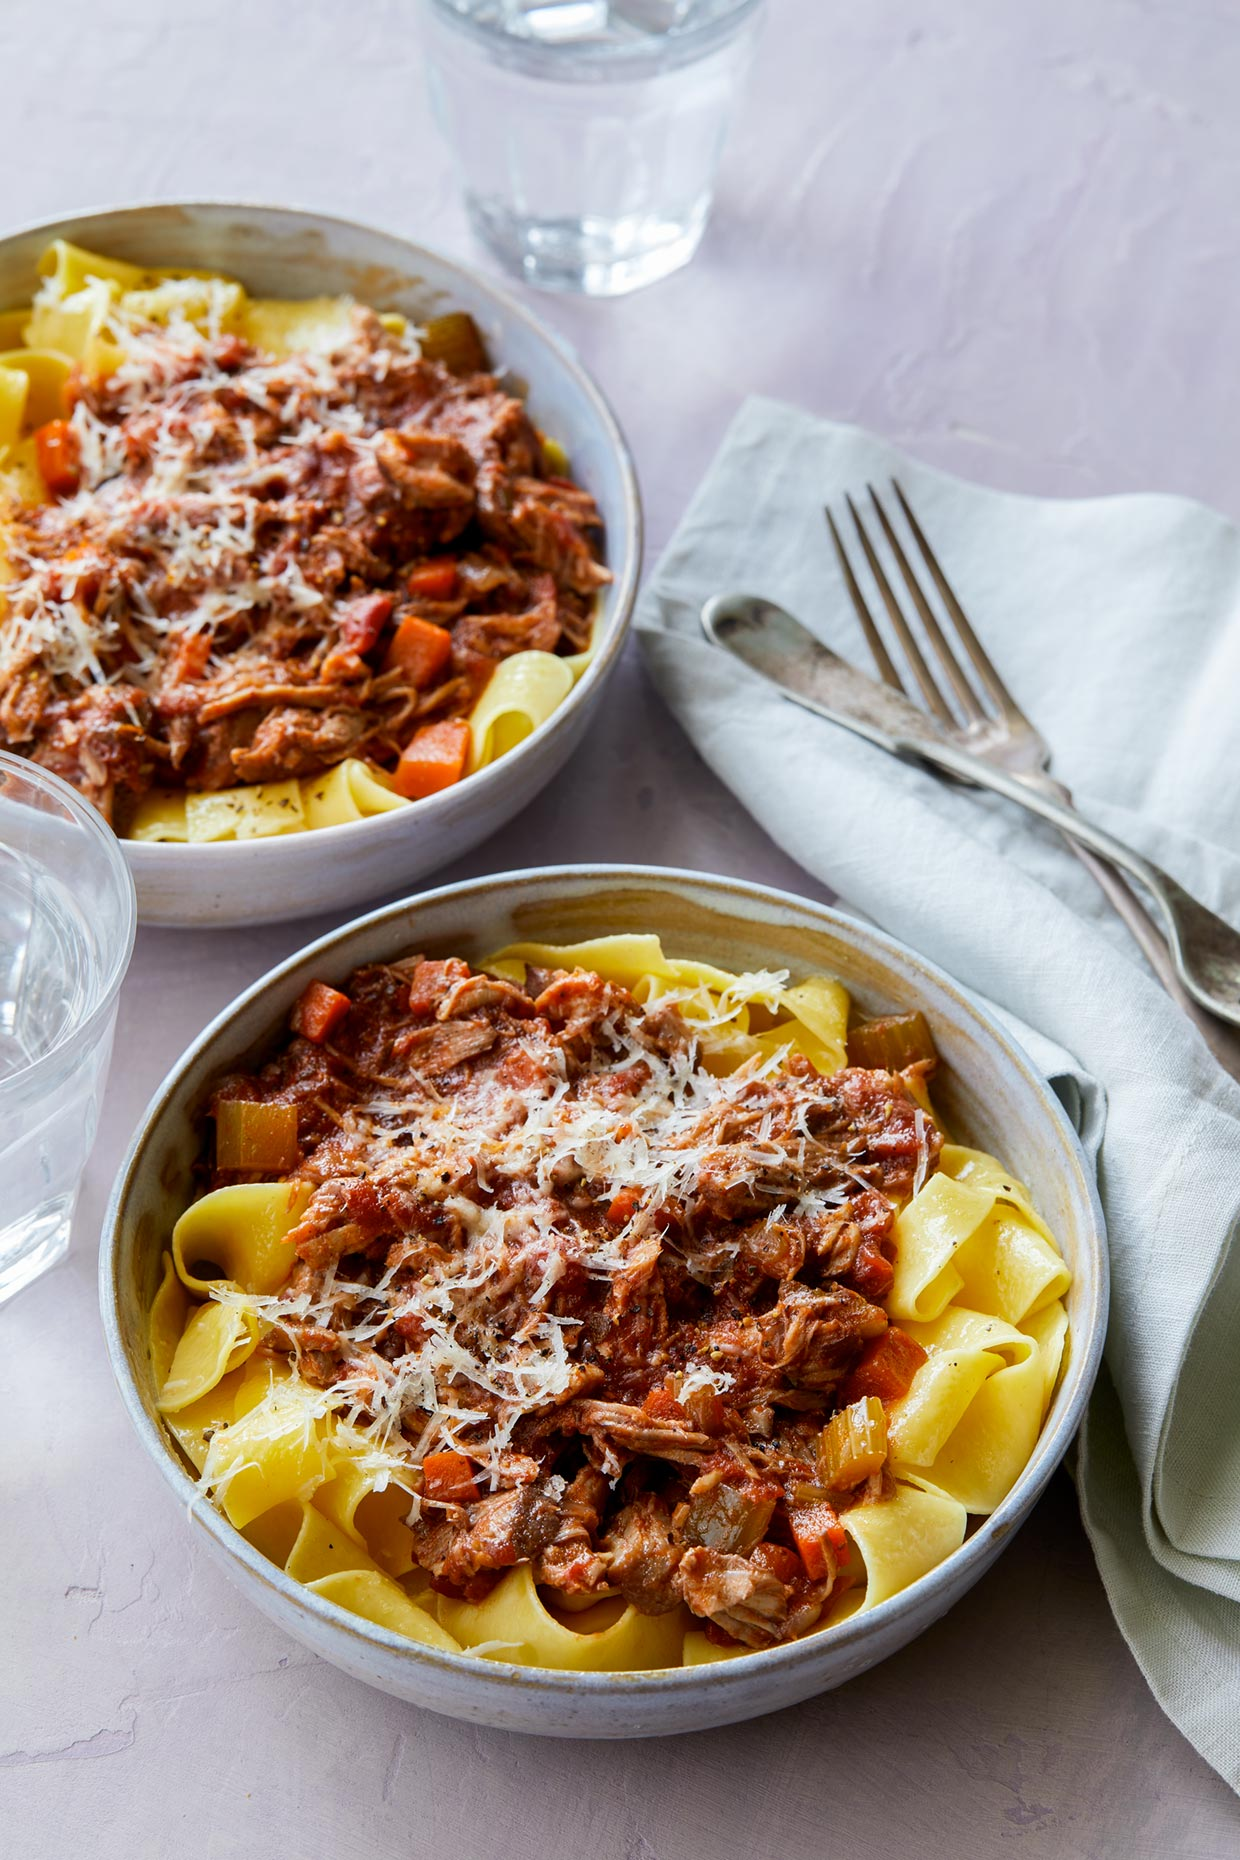 braised_pork_ragu_teri_lyn_fisher_food_photographer